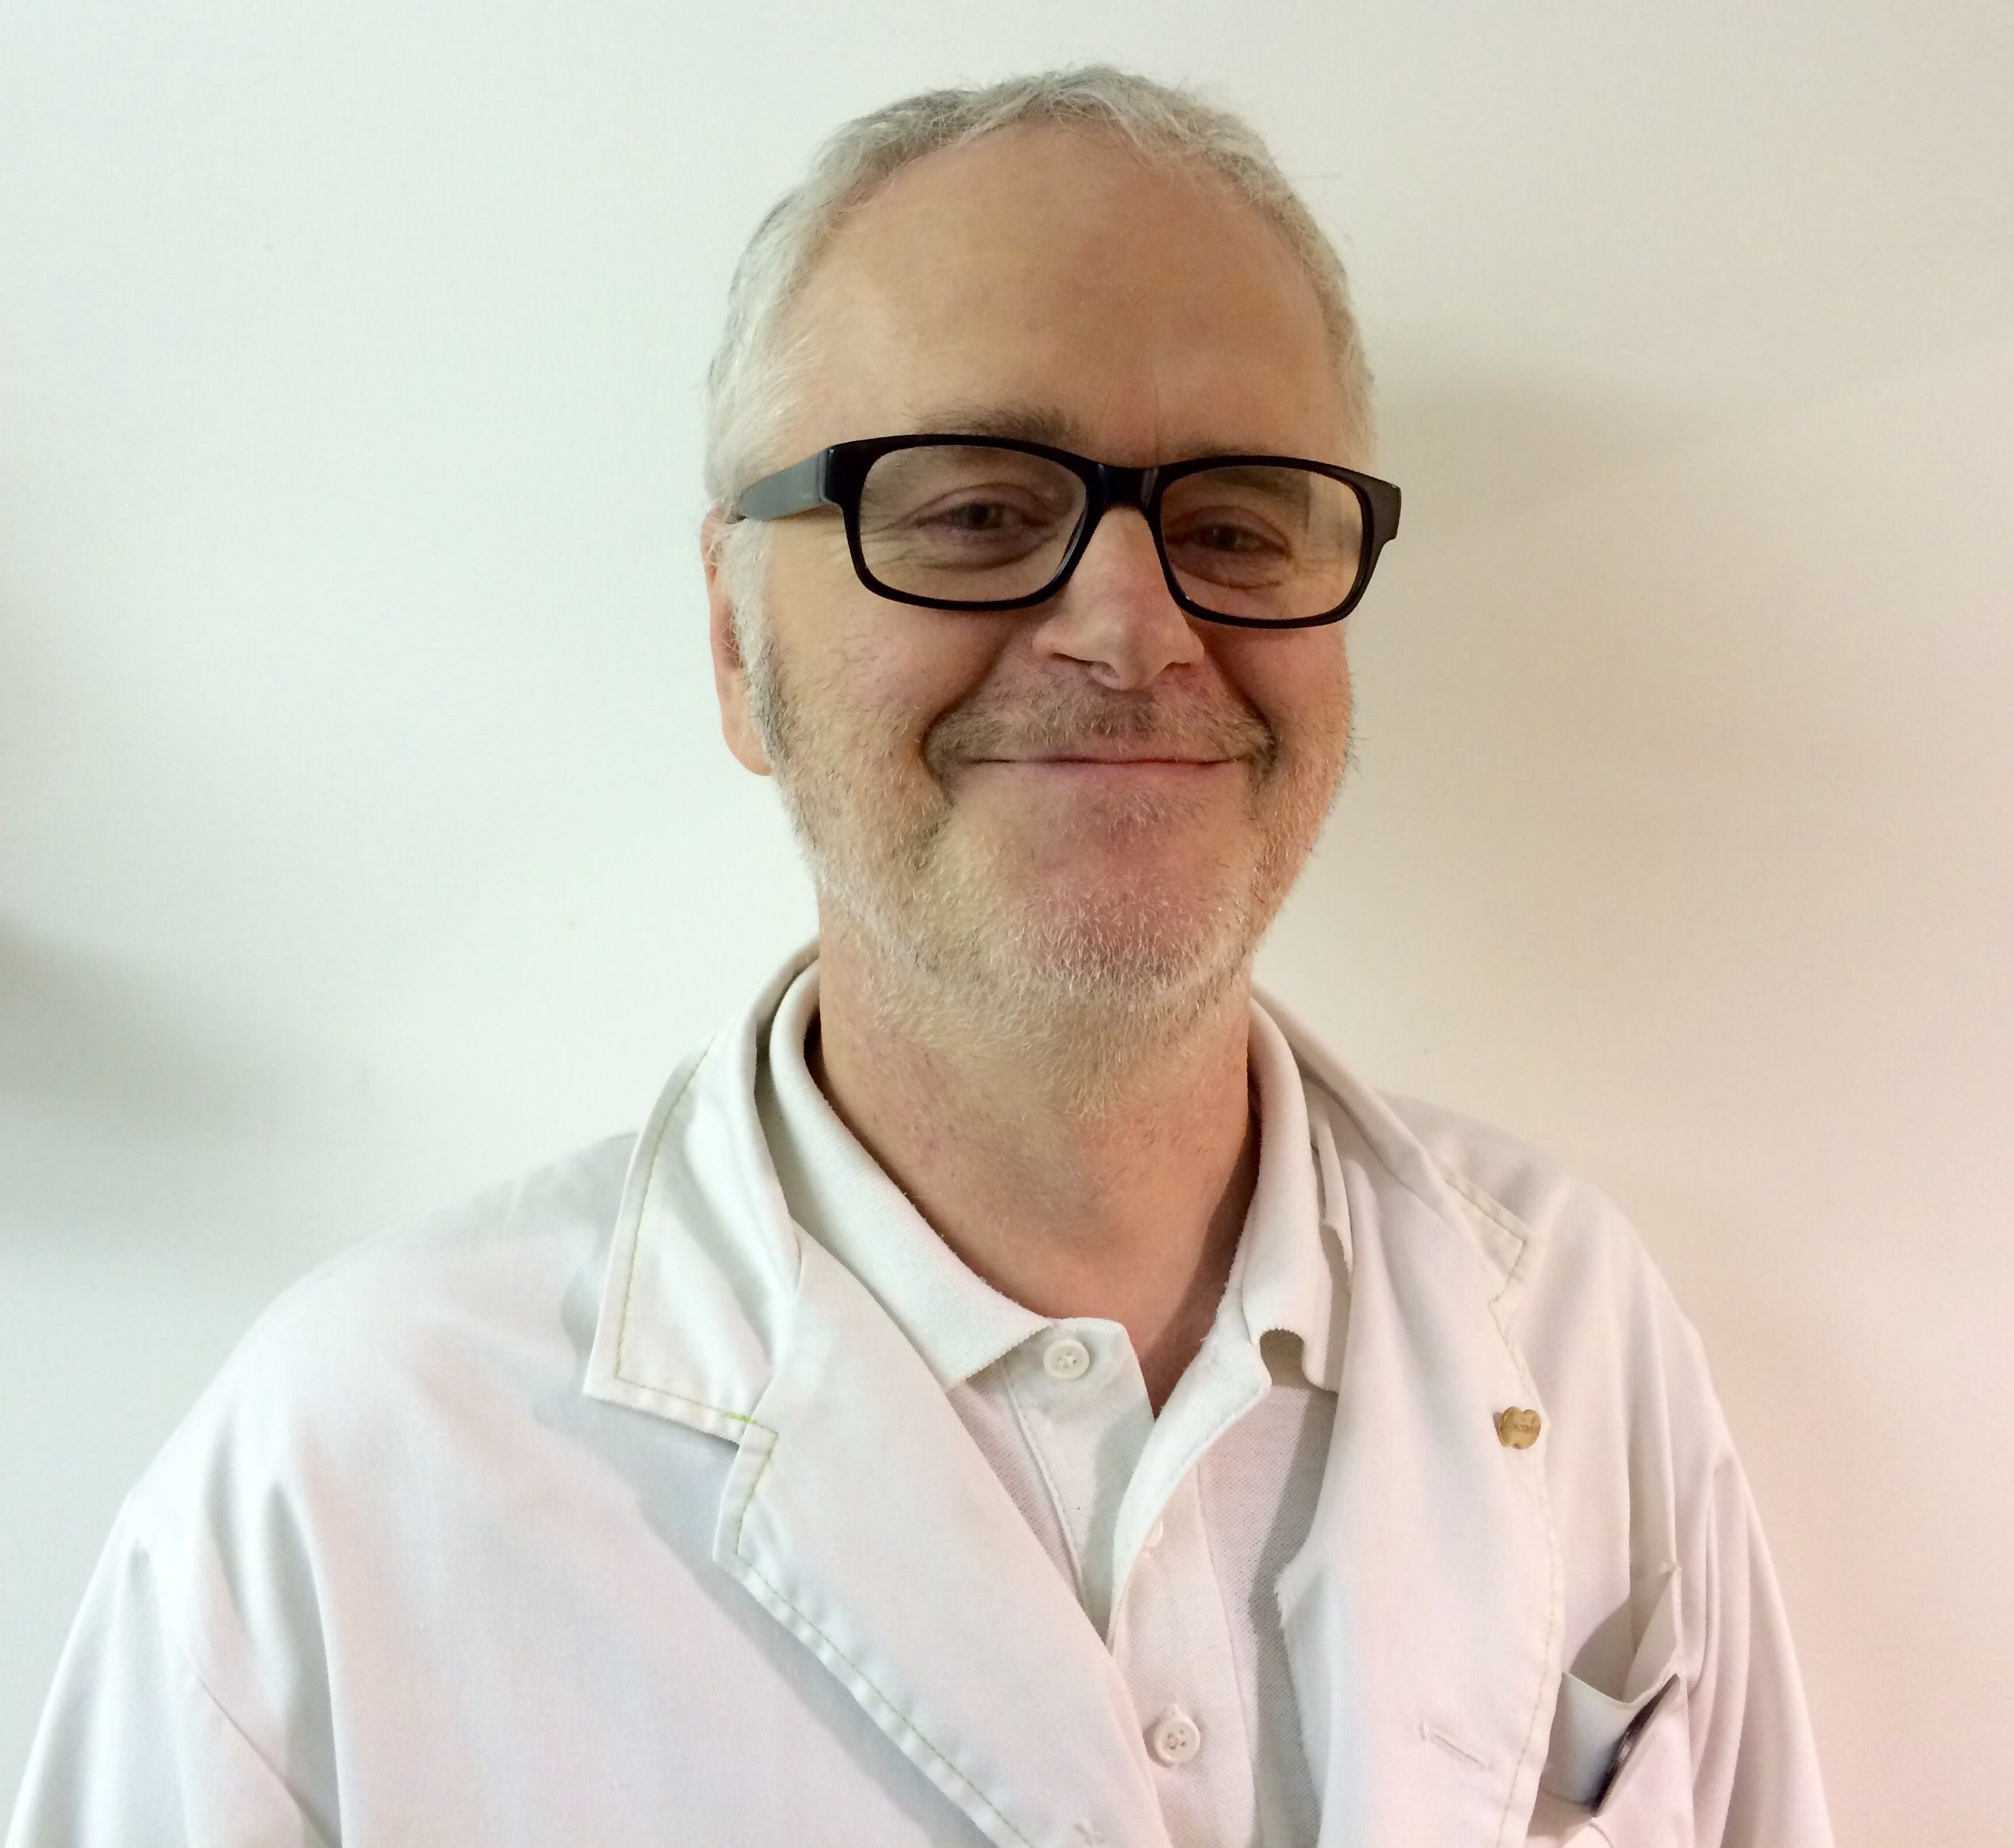 Alistair Laurie, lab manager at Specsavers Worthing